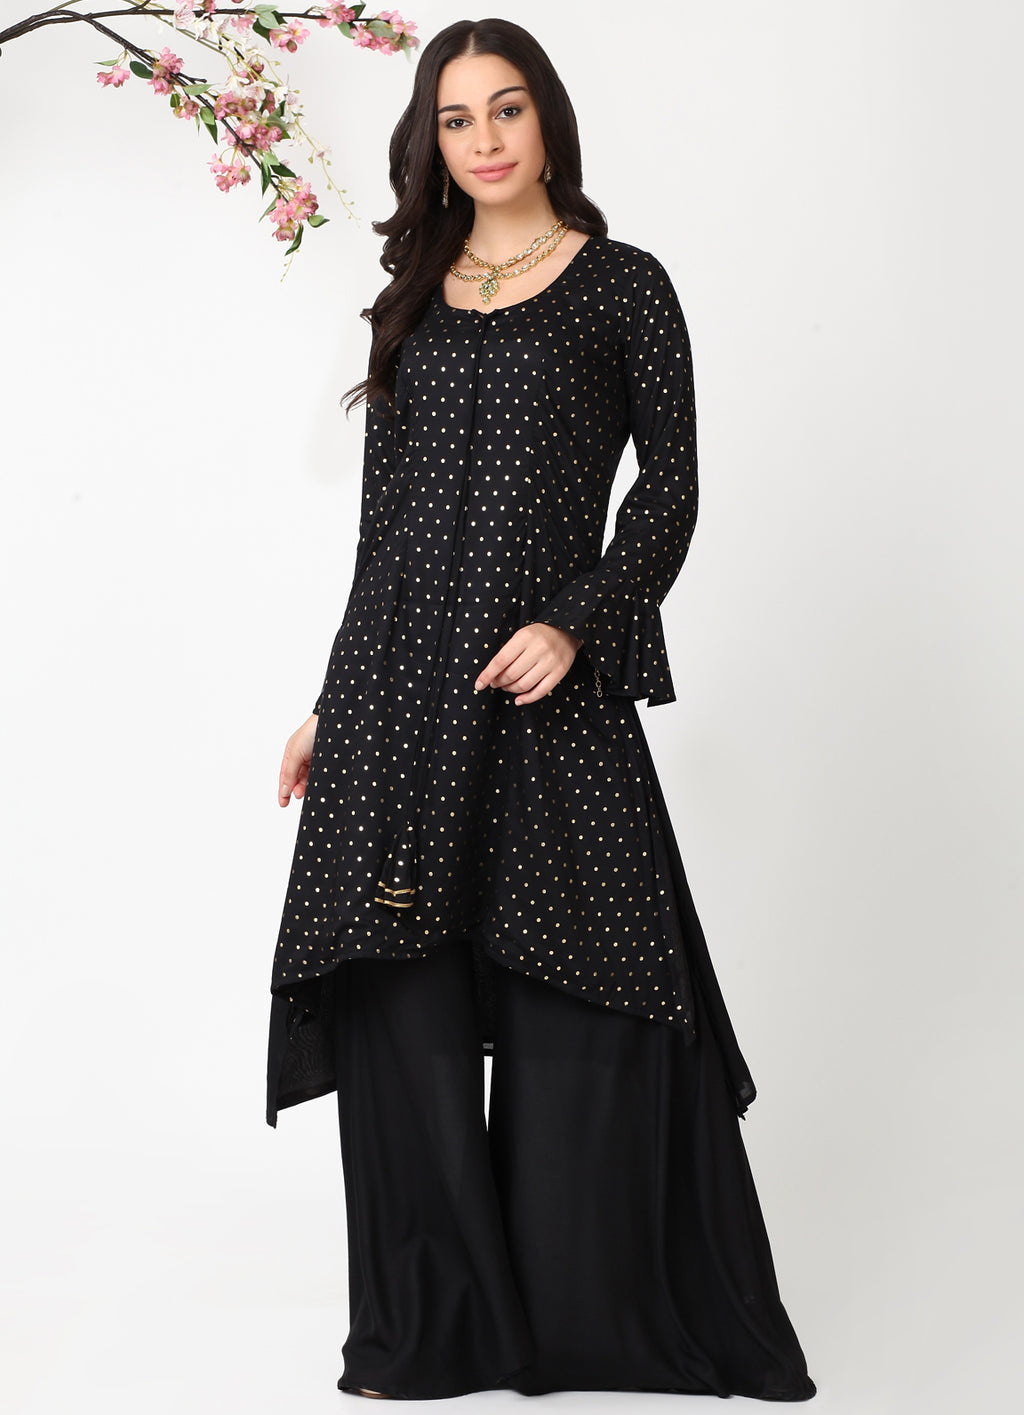 Black Handkerchief Kurta with Black Sharara